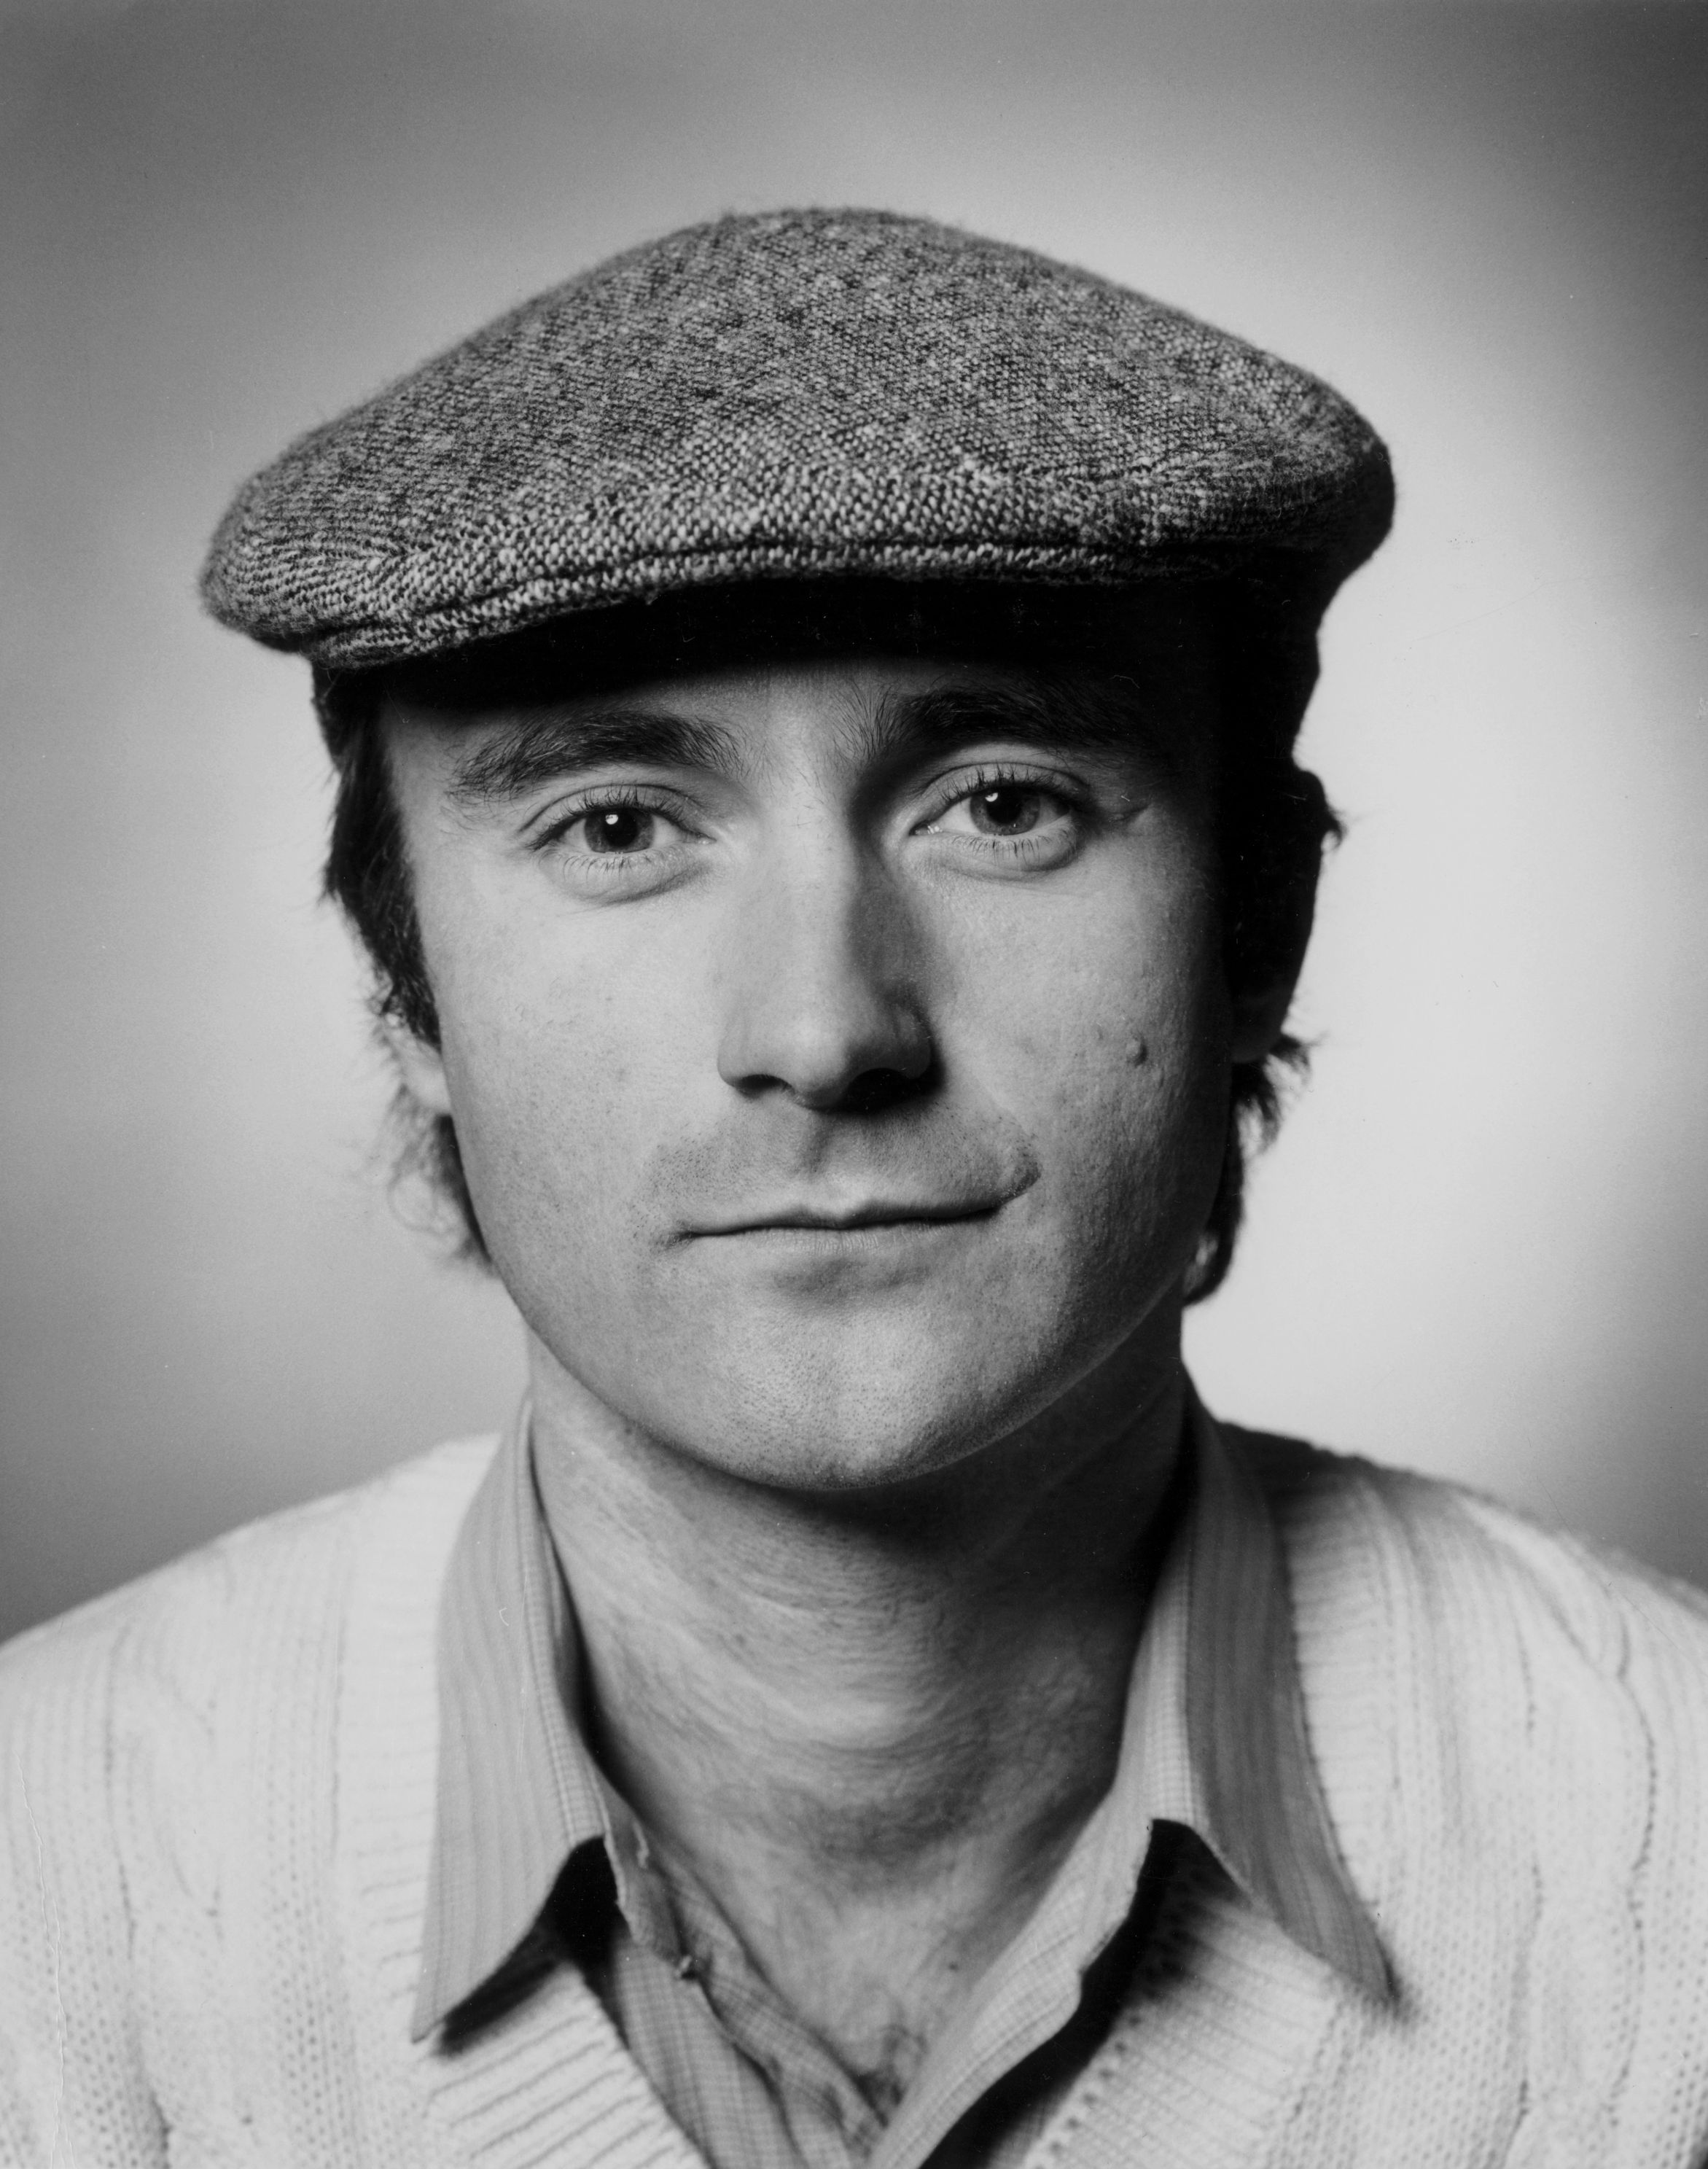 Collins 1981 Phil collins, Another day in paradise, Collins